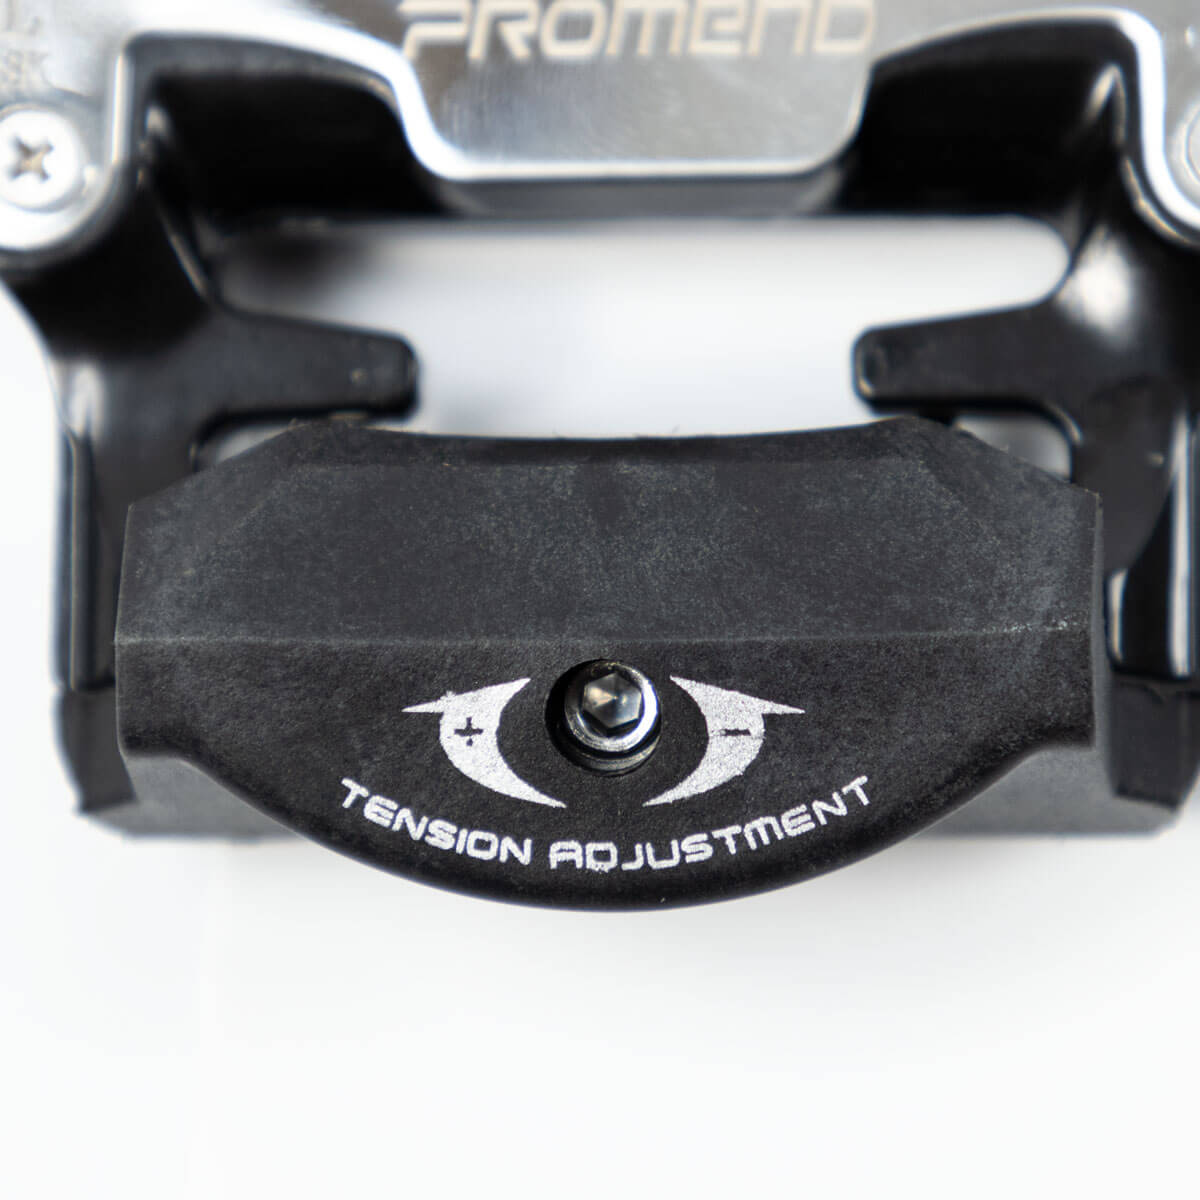 11779-pedalclip-speed promend